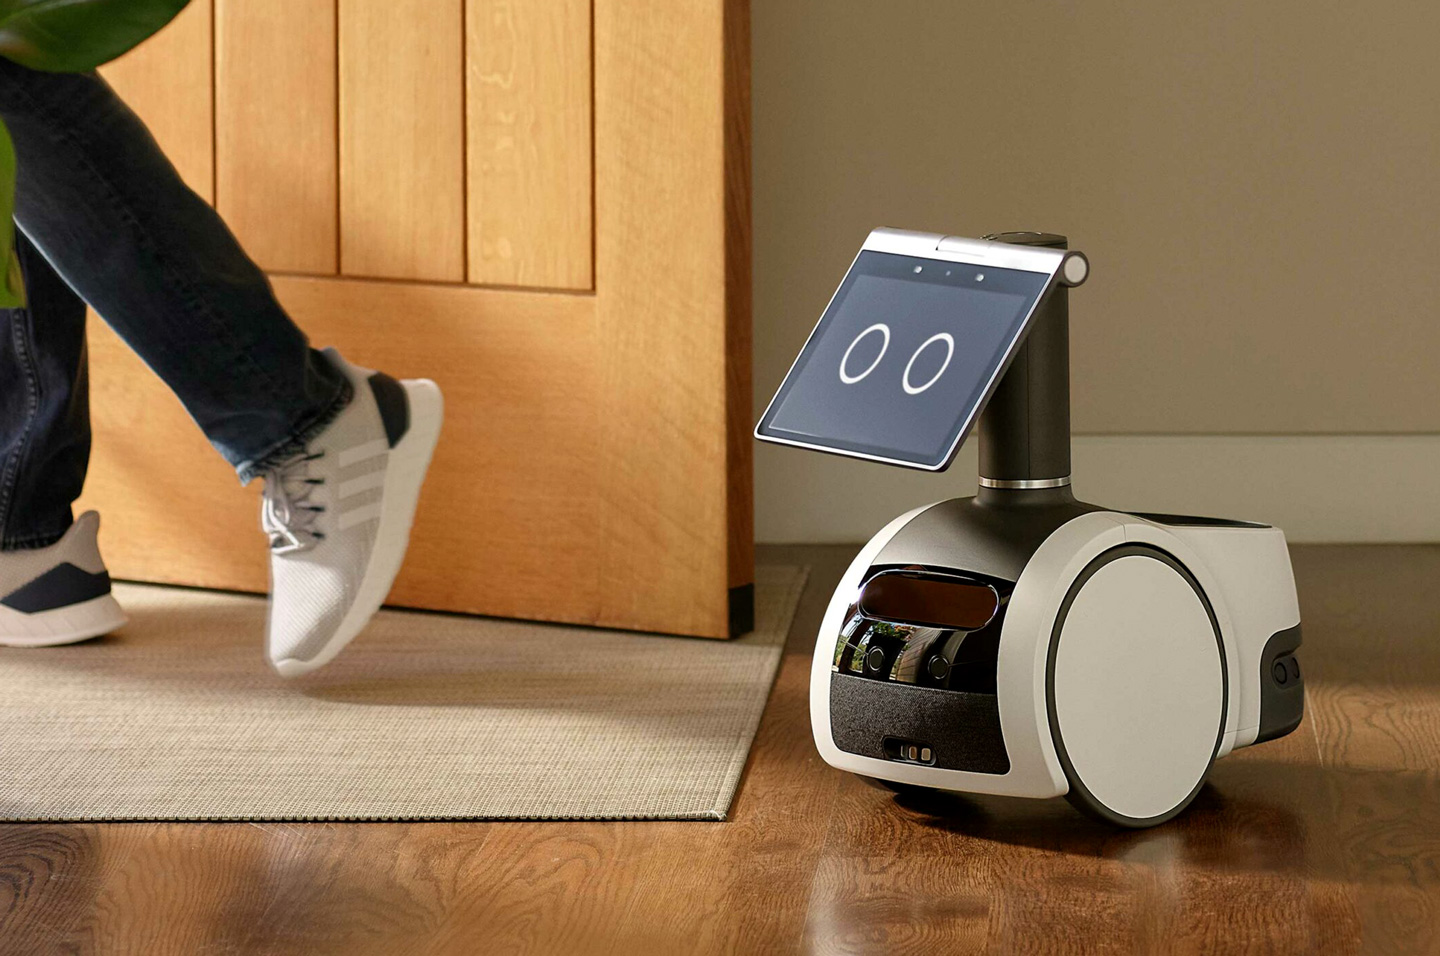 Amazon just launched a (slightly) creepy Home Robot that can follow you around your house and responds to voice commands